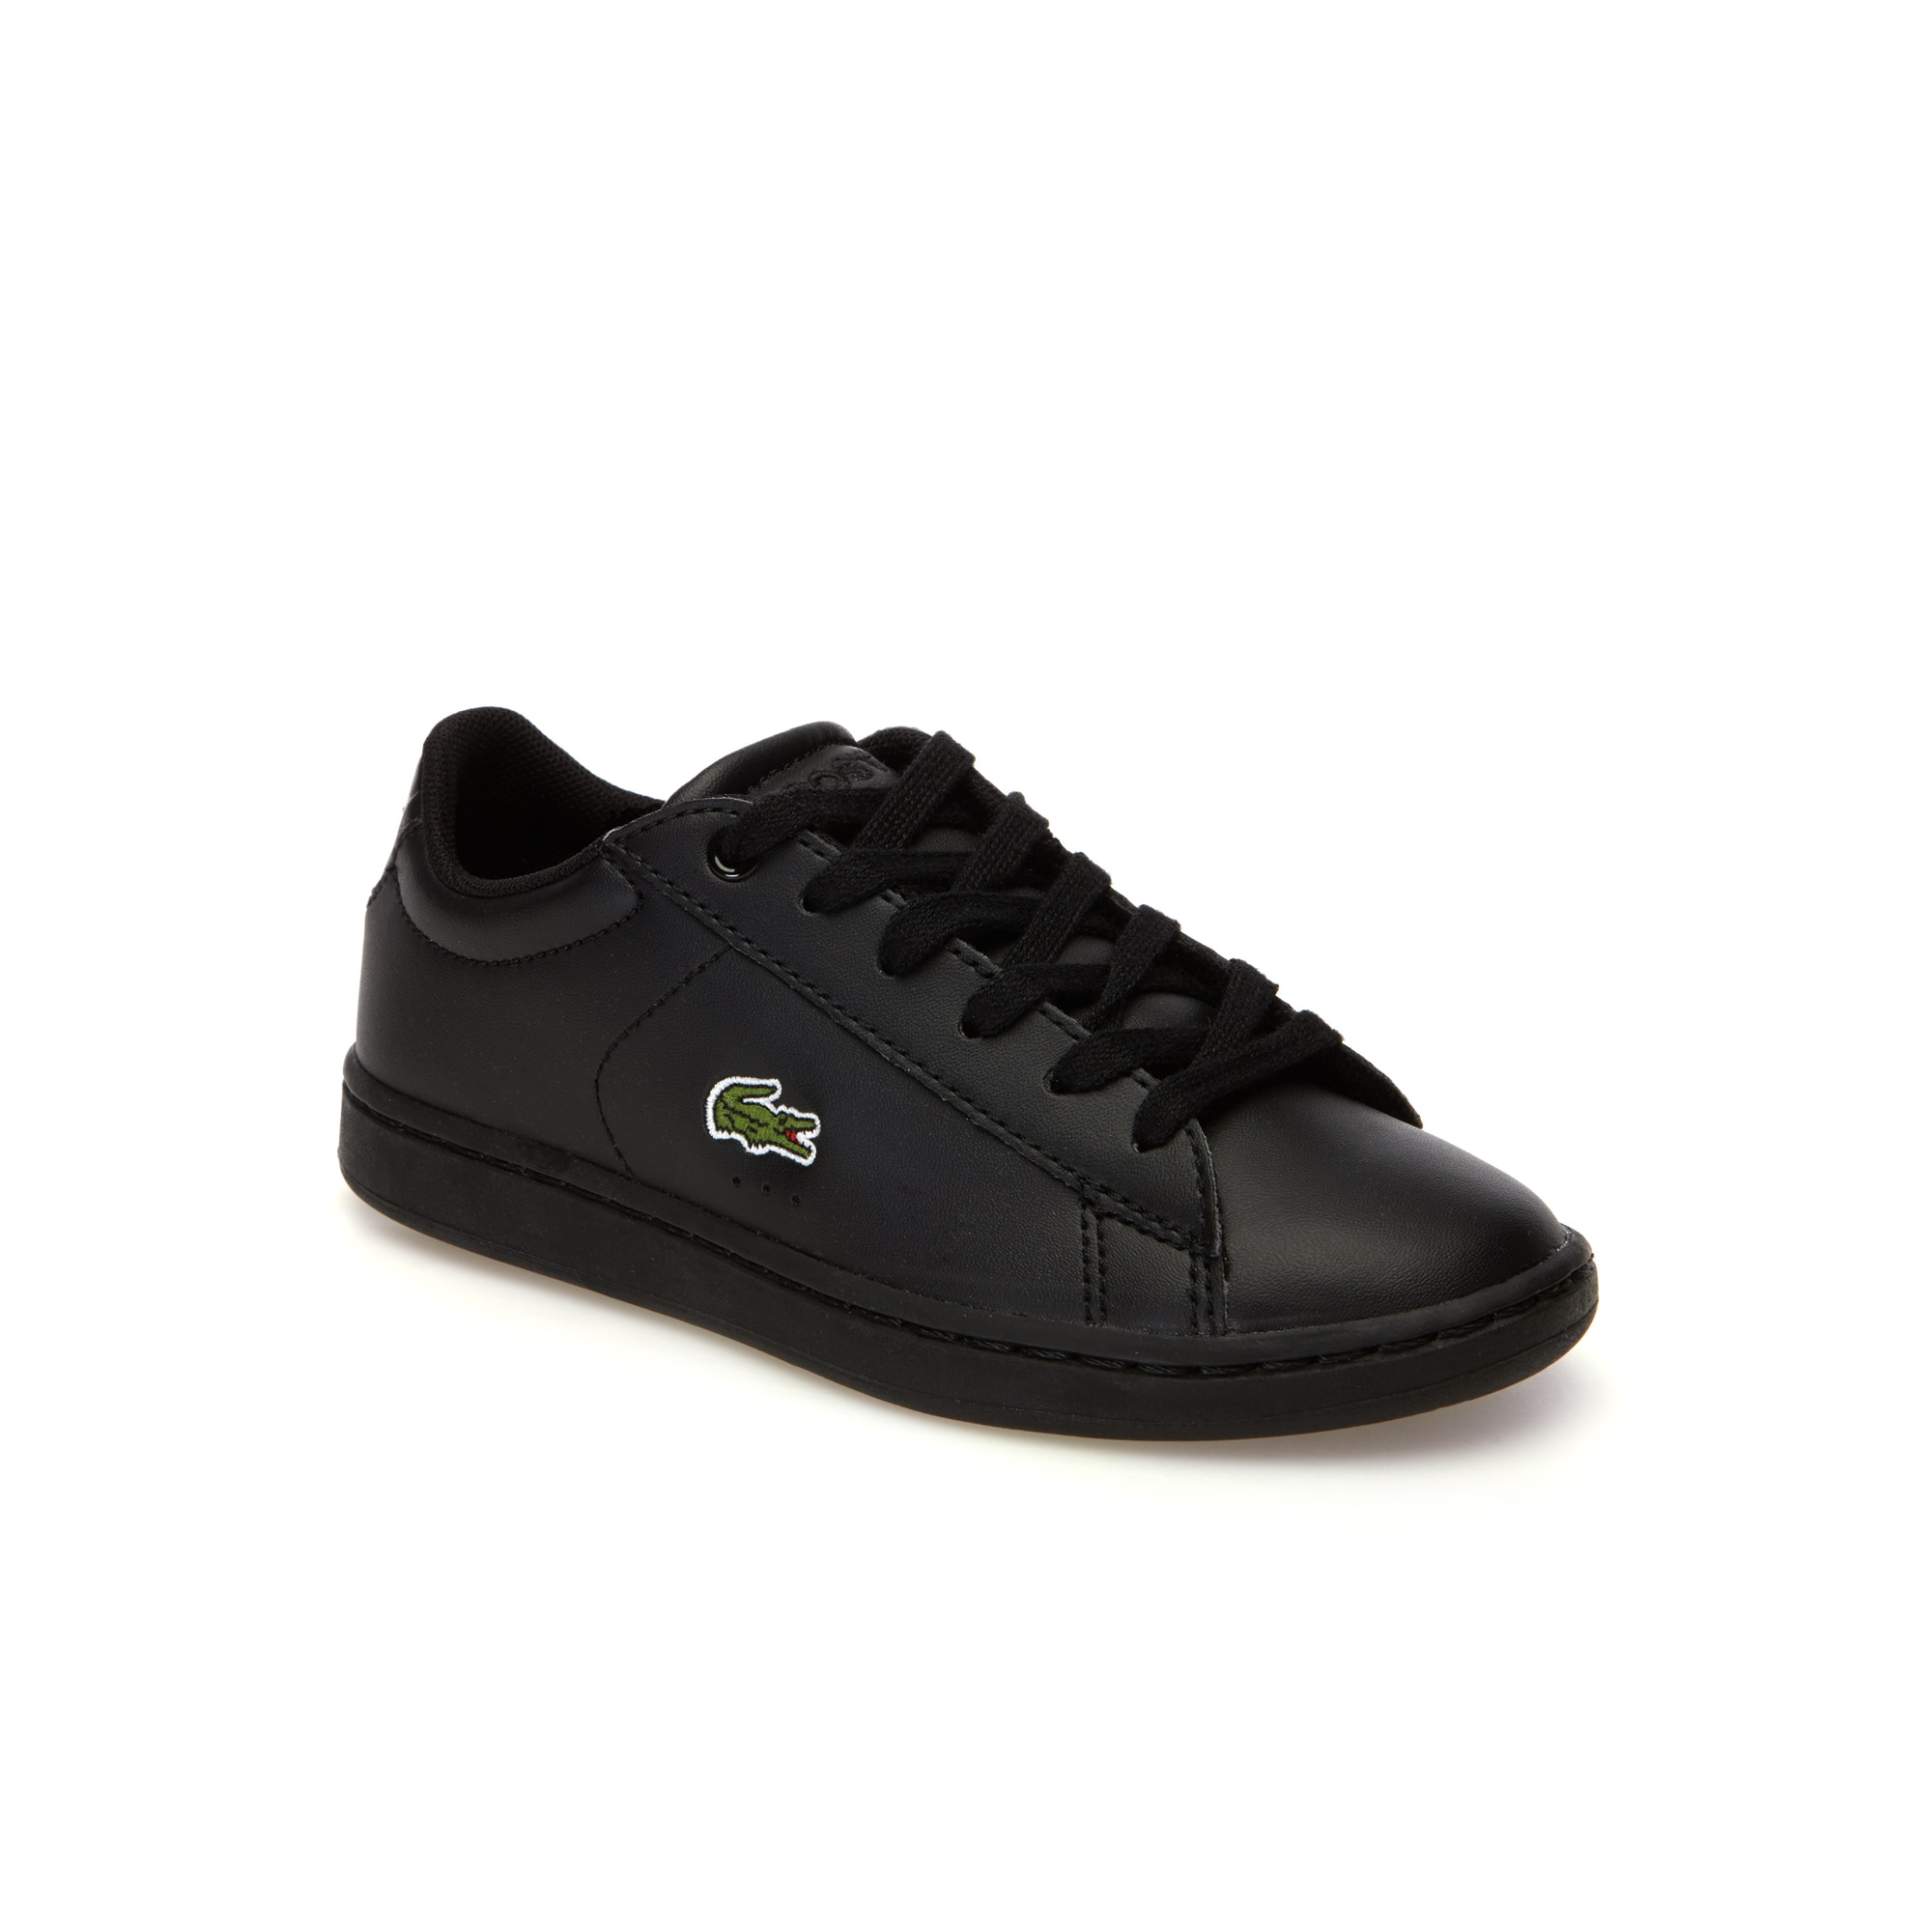 Childrens' Carnaby Evo Leather-look Trainers with Piqué mesh linings